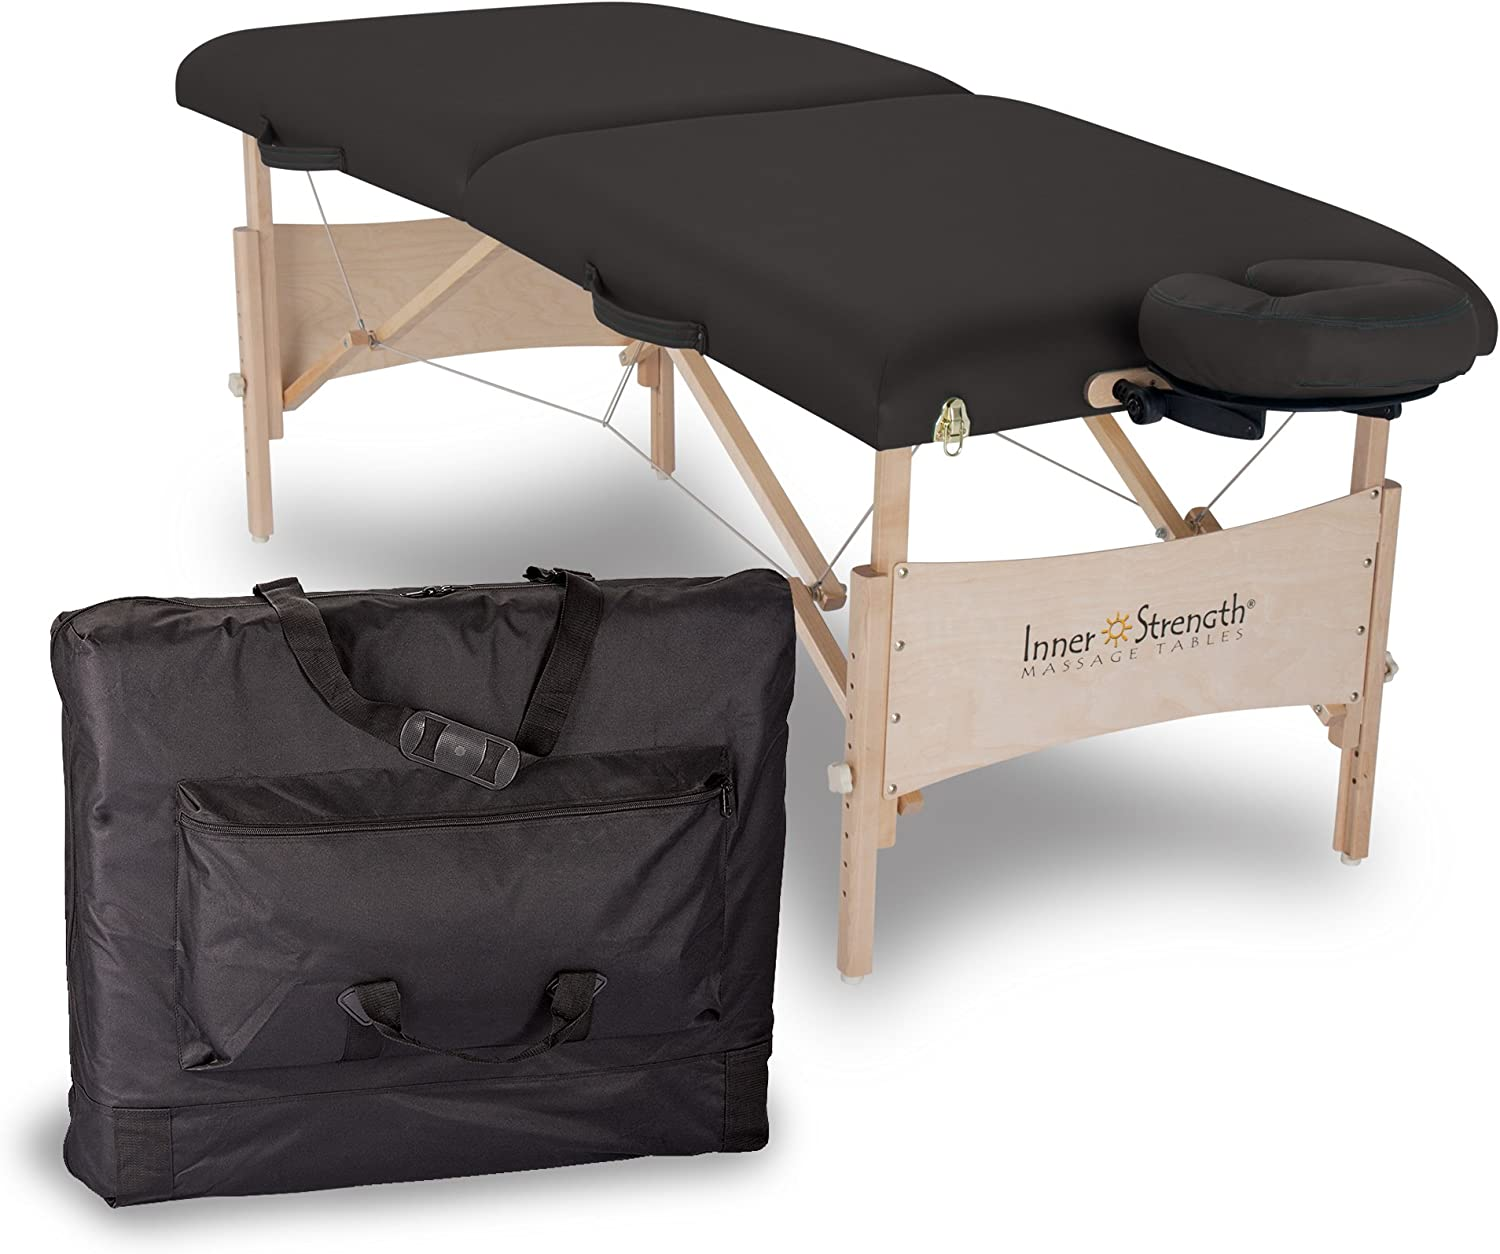 INNER STRENGTH Portable Massage Table Package ELEMENT Incl. Deluxe Adjustable Face Cradle, Face Pillow Carrying Case